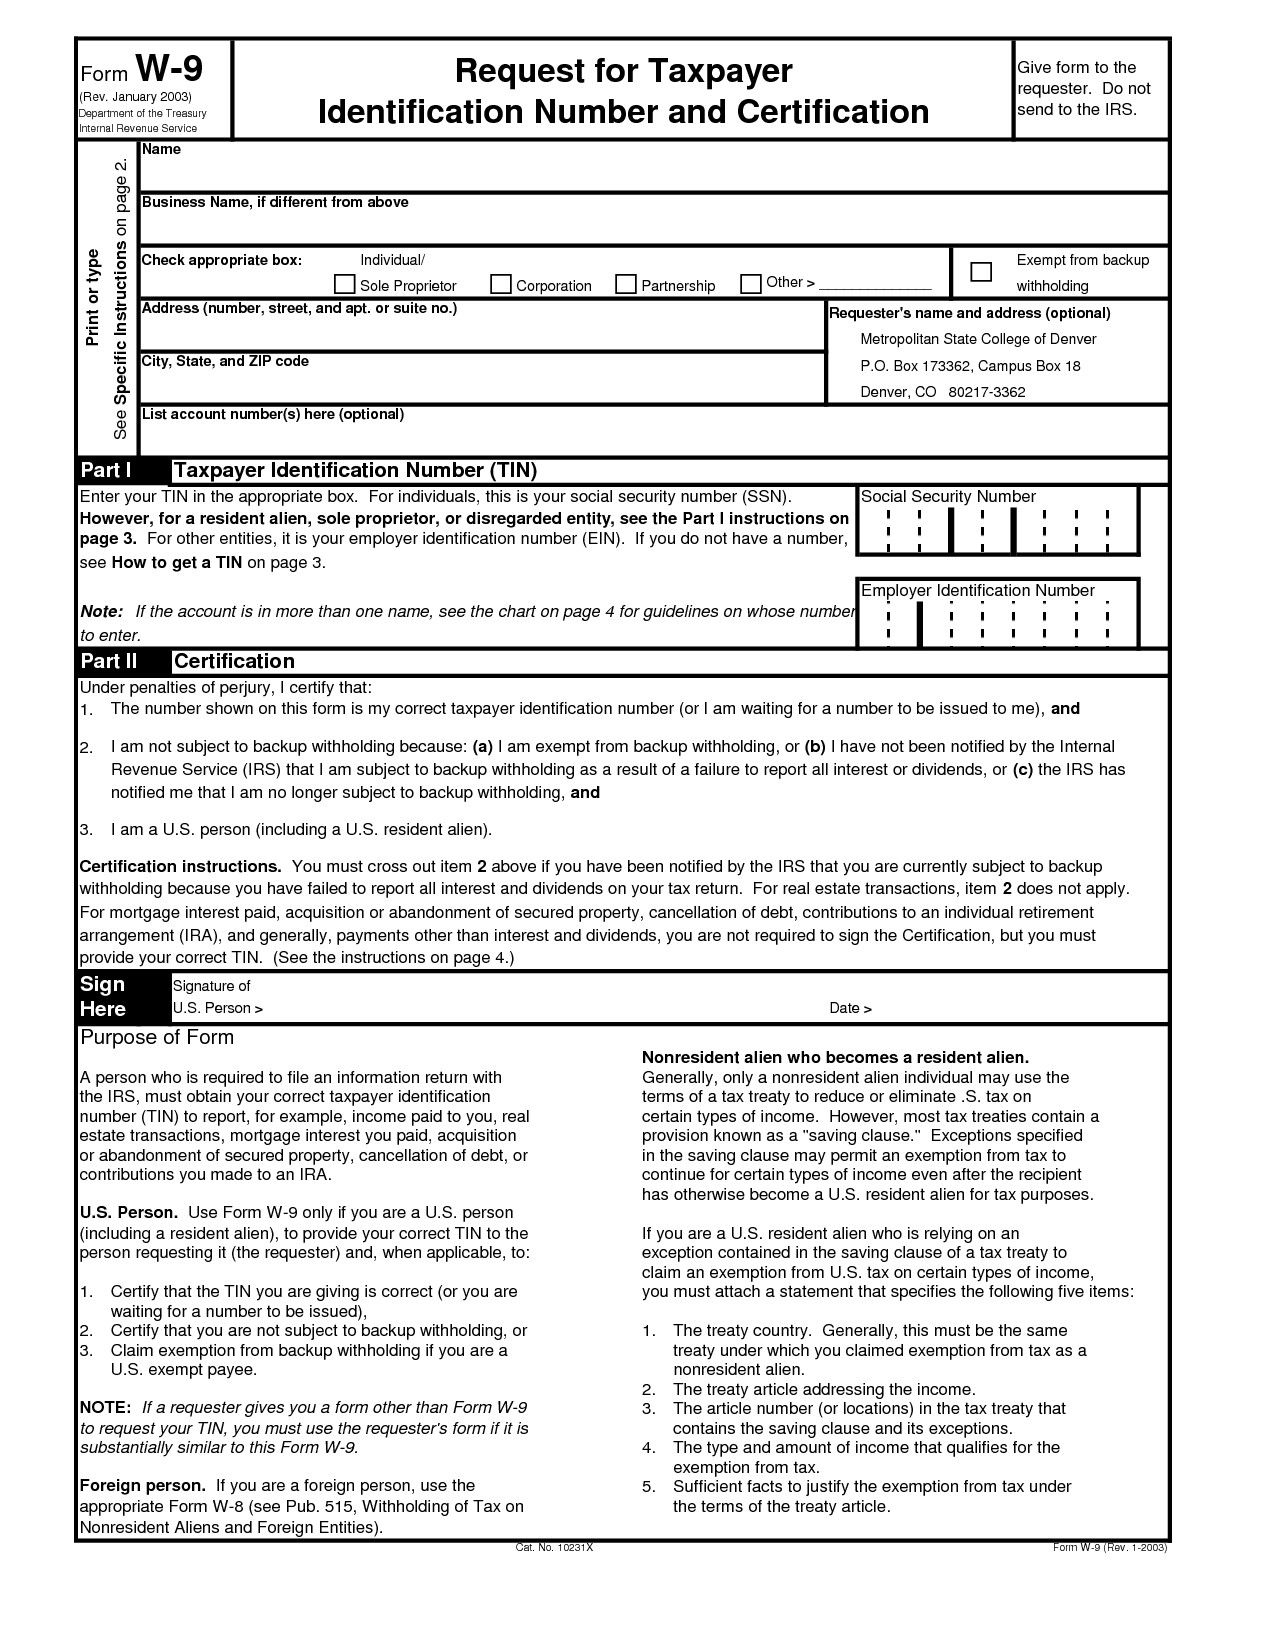 Downloadable Form W 9 Printable W9 Printable Pages In 2020 throughout Irs Form W 9 Fillable Pdf